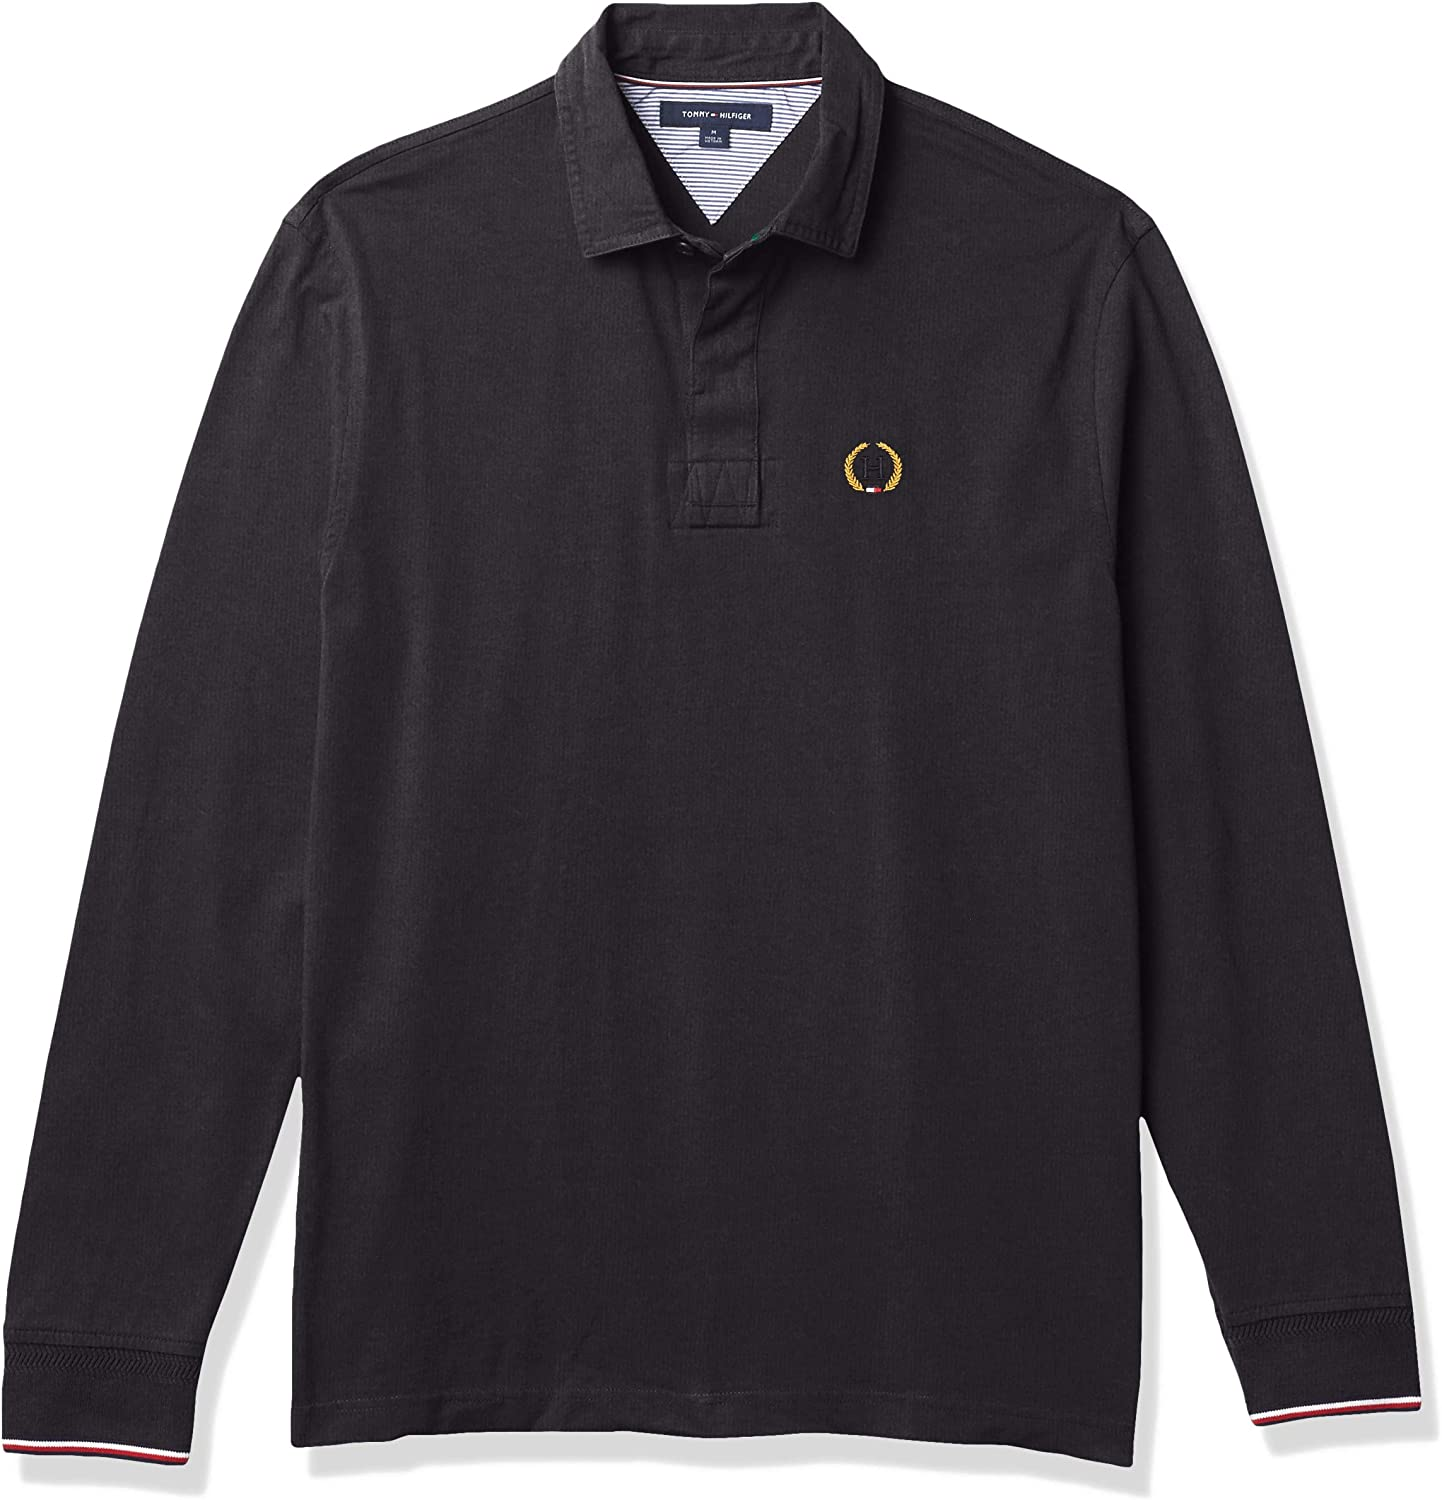 Tommy Hilfiger Men's Long Sleeve Rugby Shirt 35th Anniversary Iconic Re-Issue